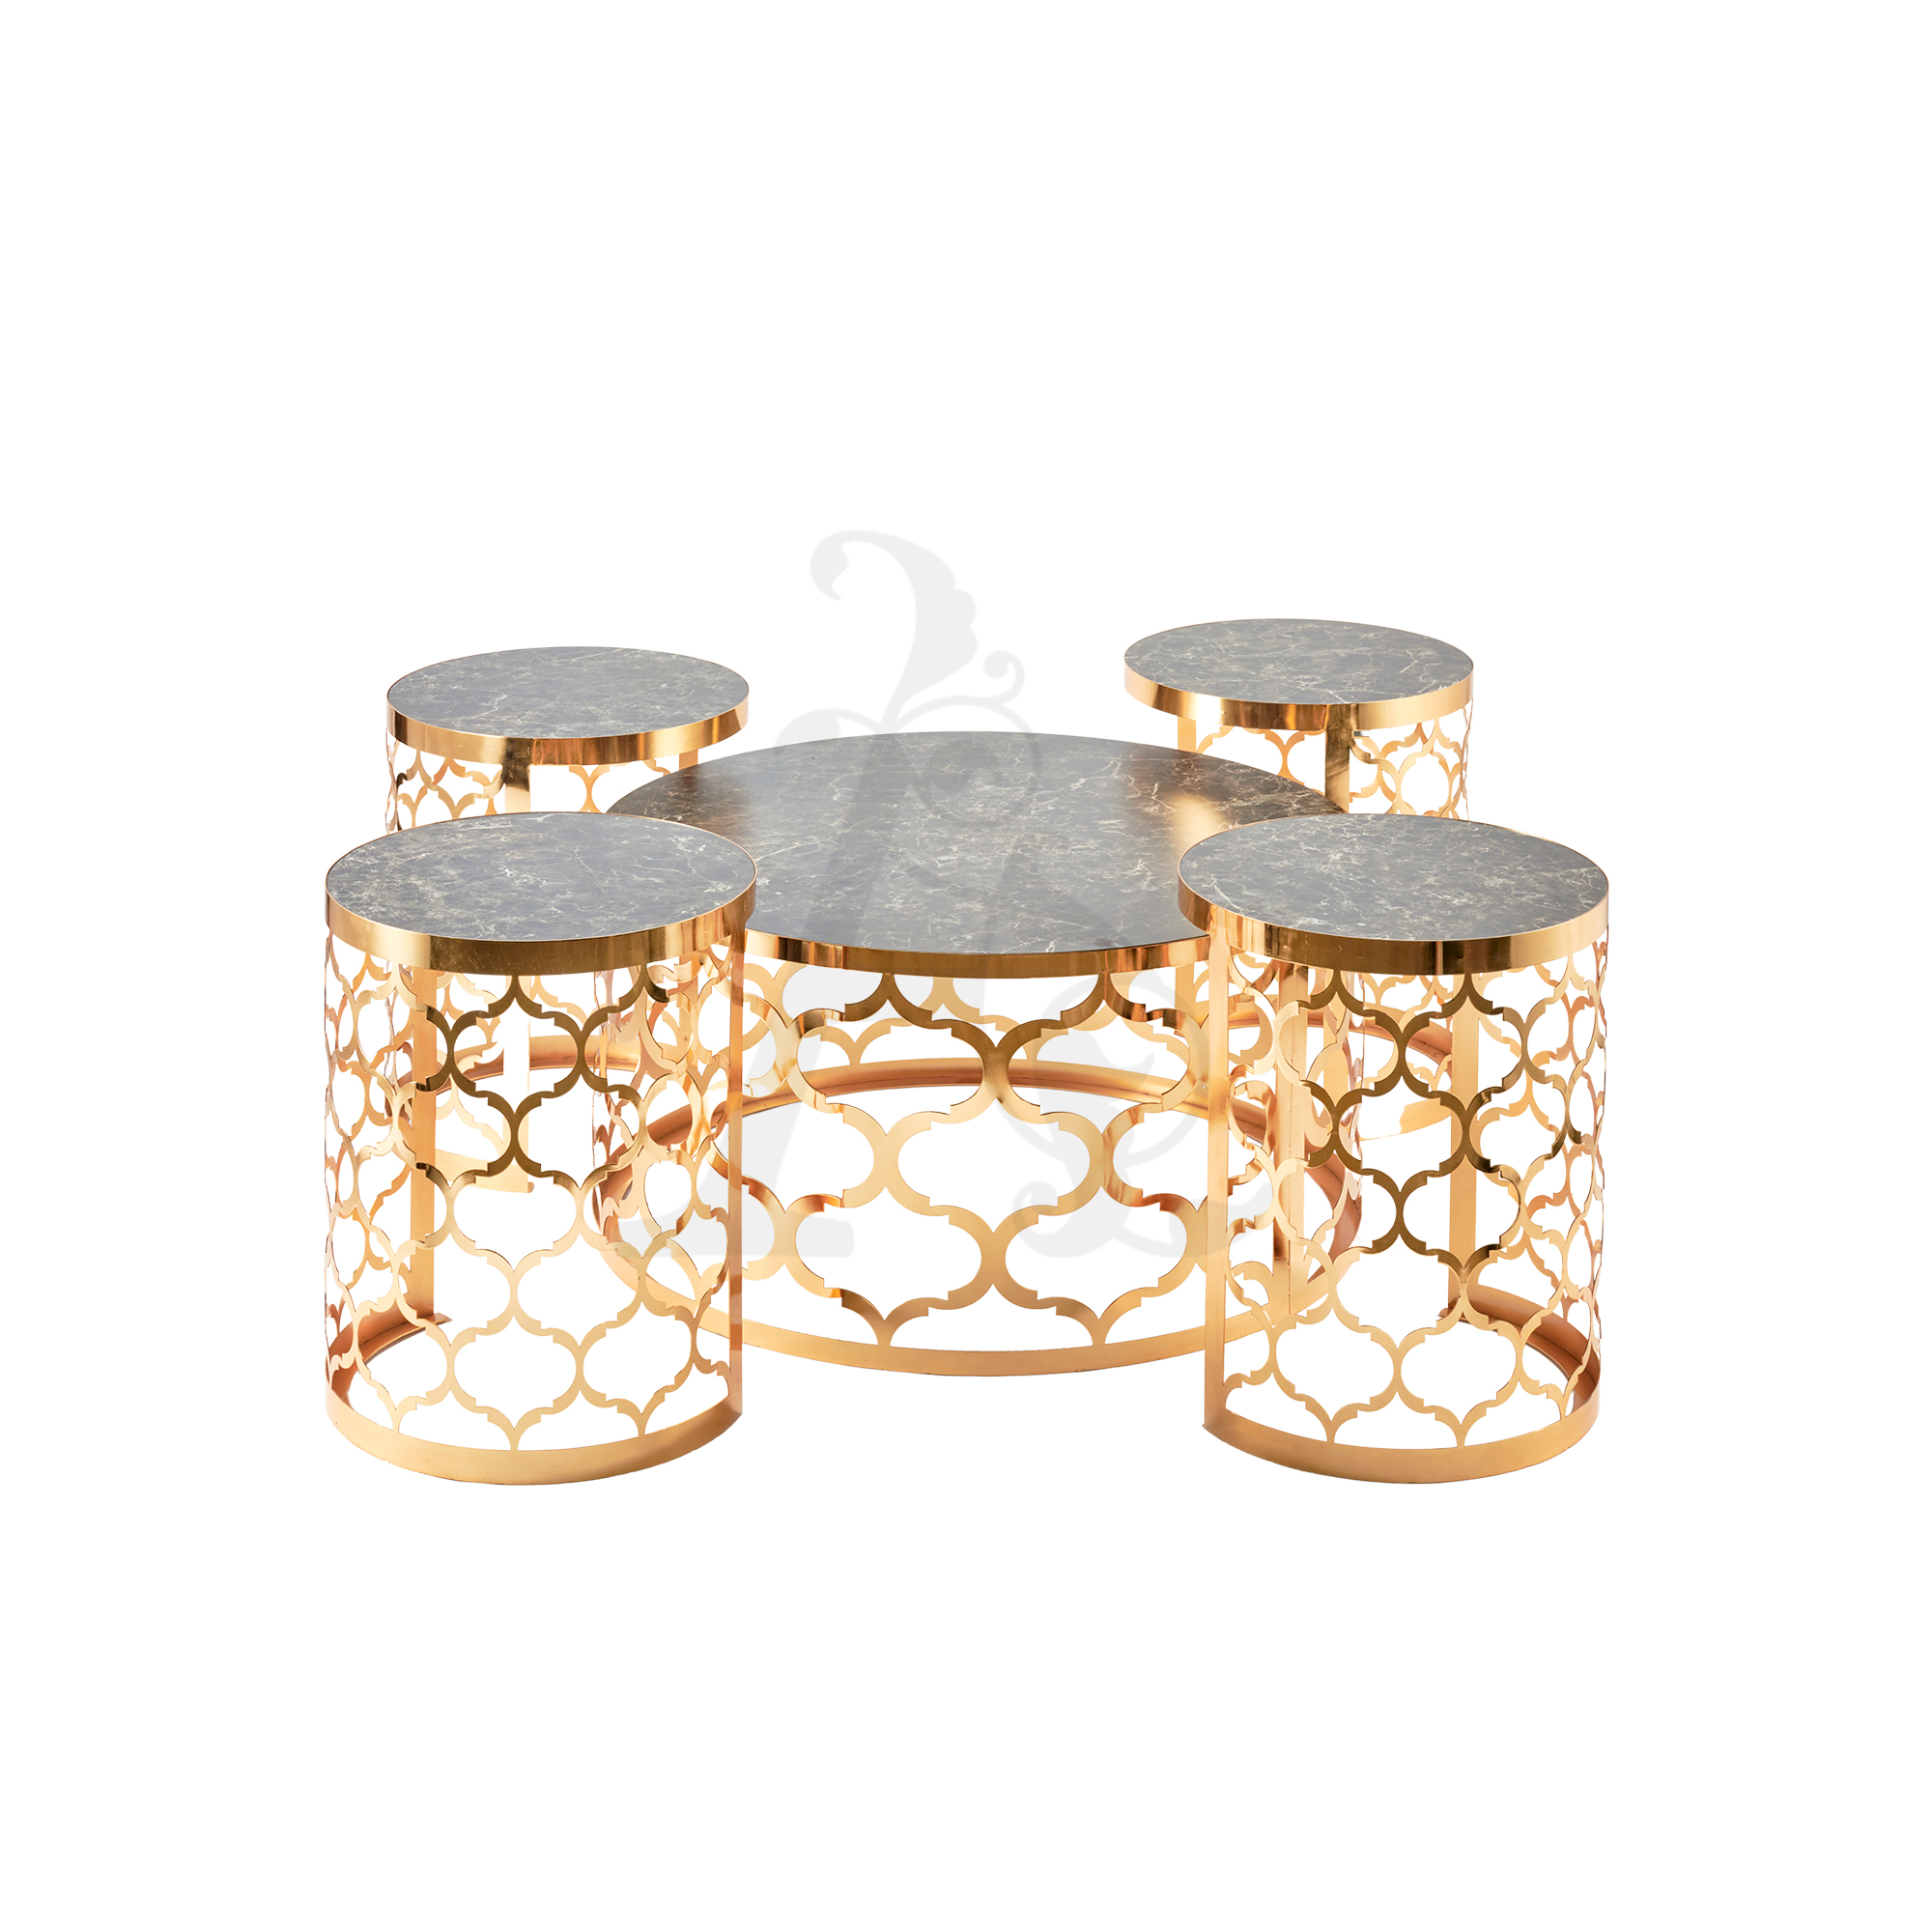 Buy Nest of 5 Round Marble Tables - Black and Gold